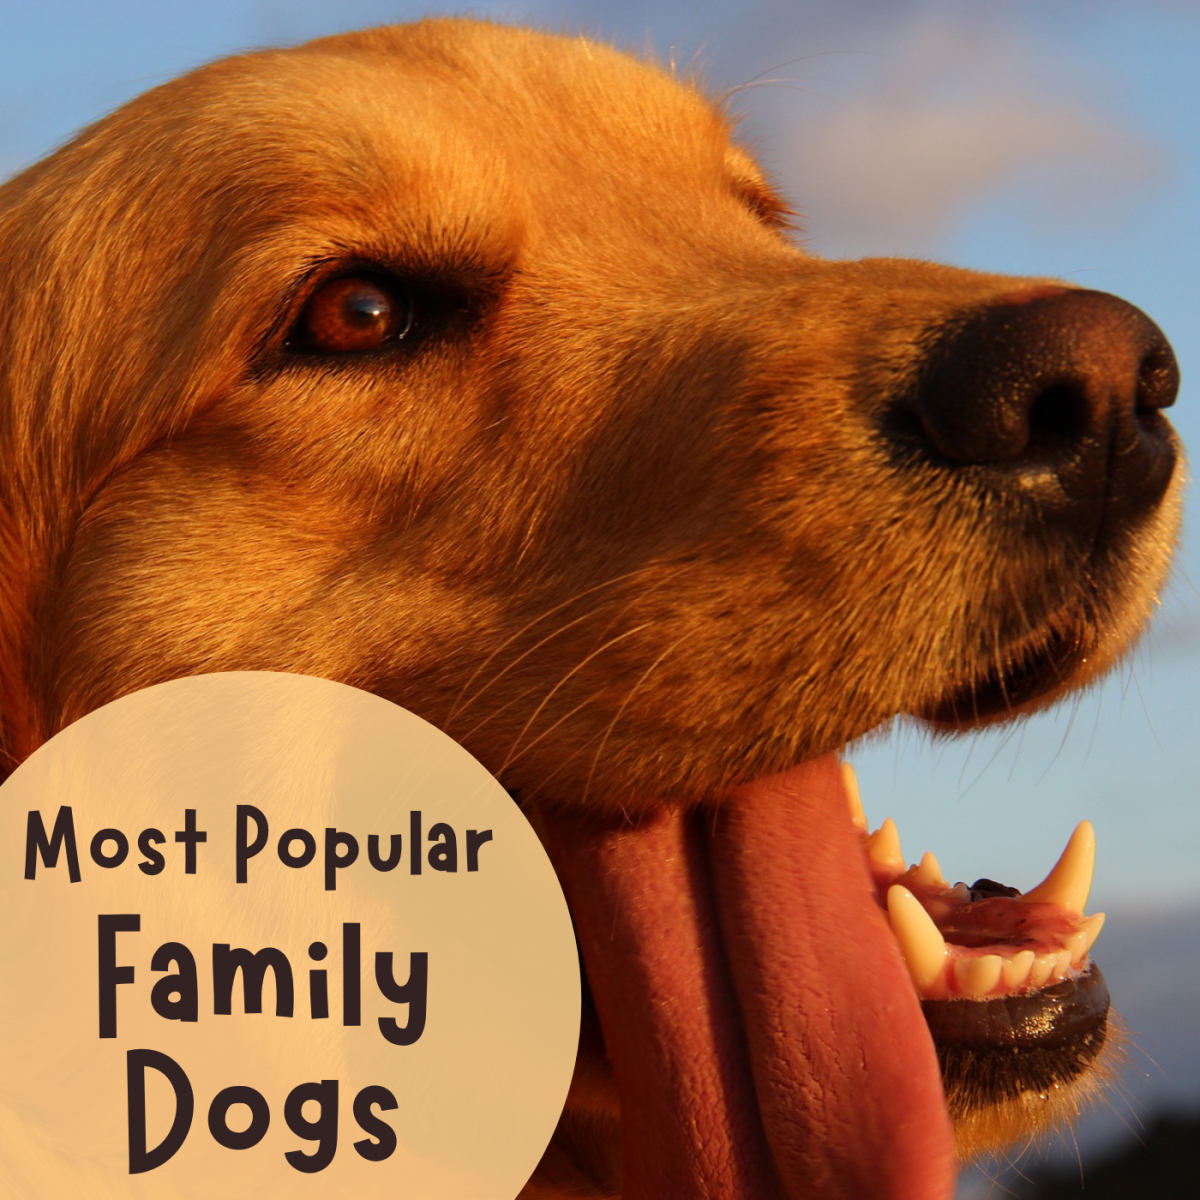 Best Family Dog Breeds: Five Most Popular in the U.S.